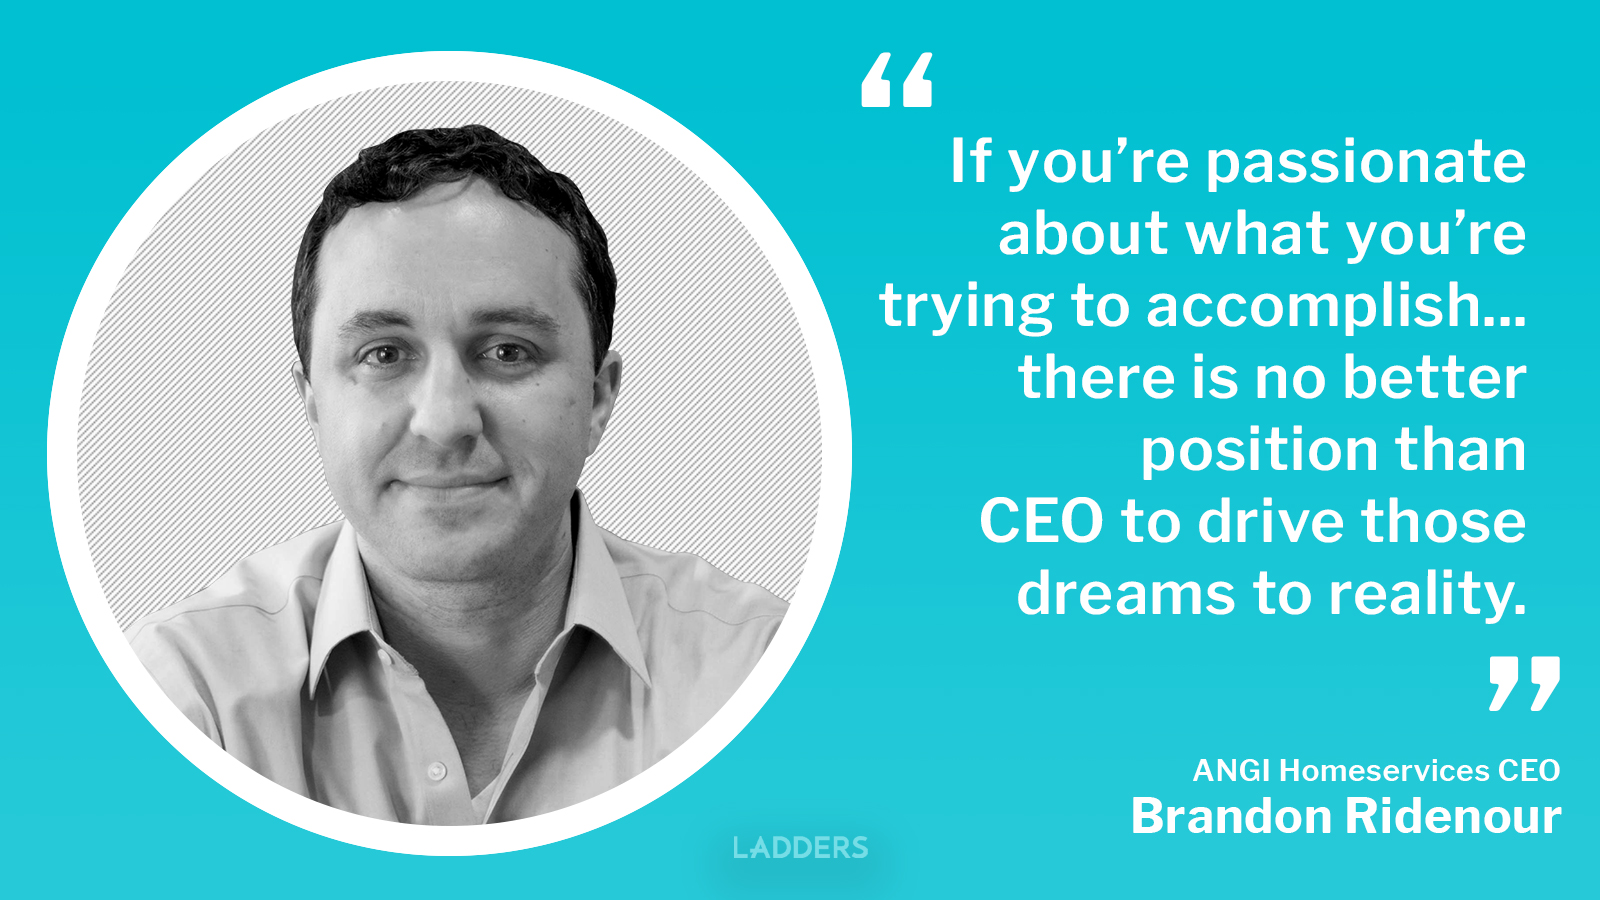 ANGI Homeservices CEO Brandon Ridenour on his career path and the future of home services